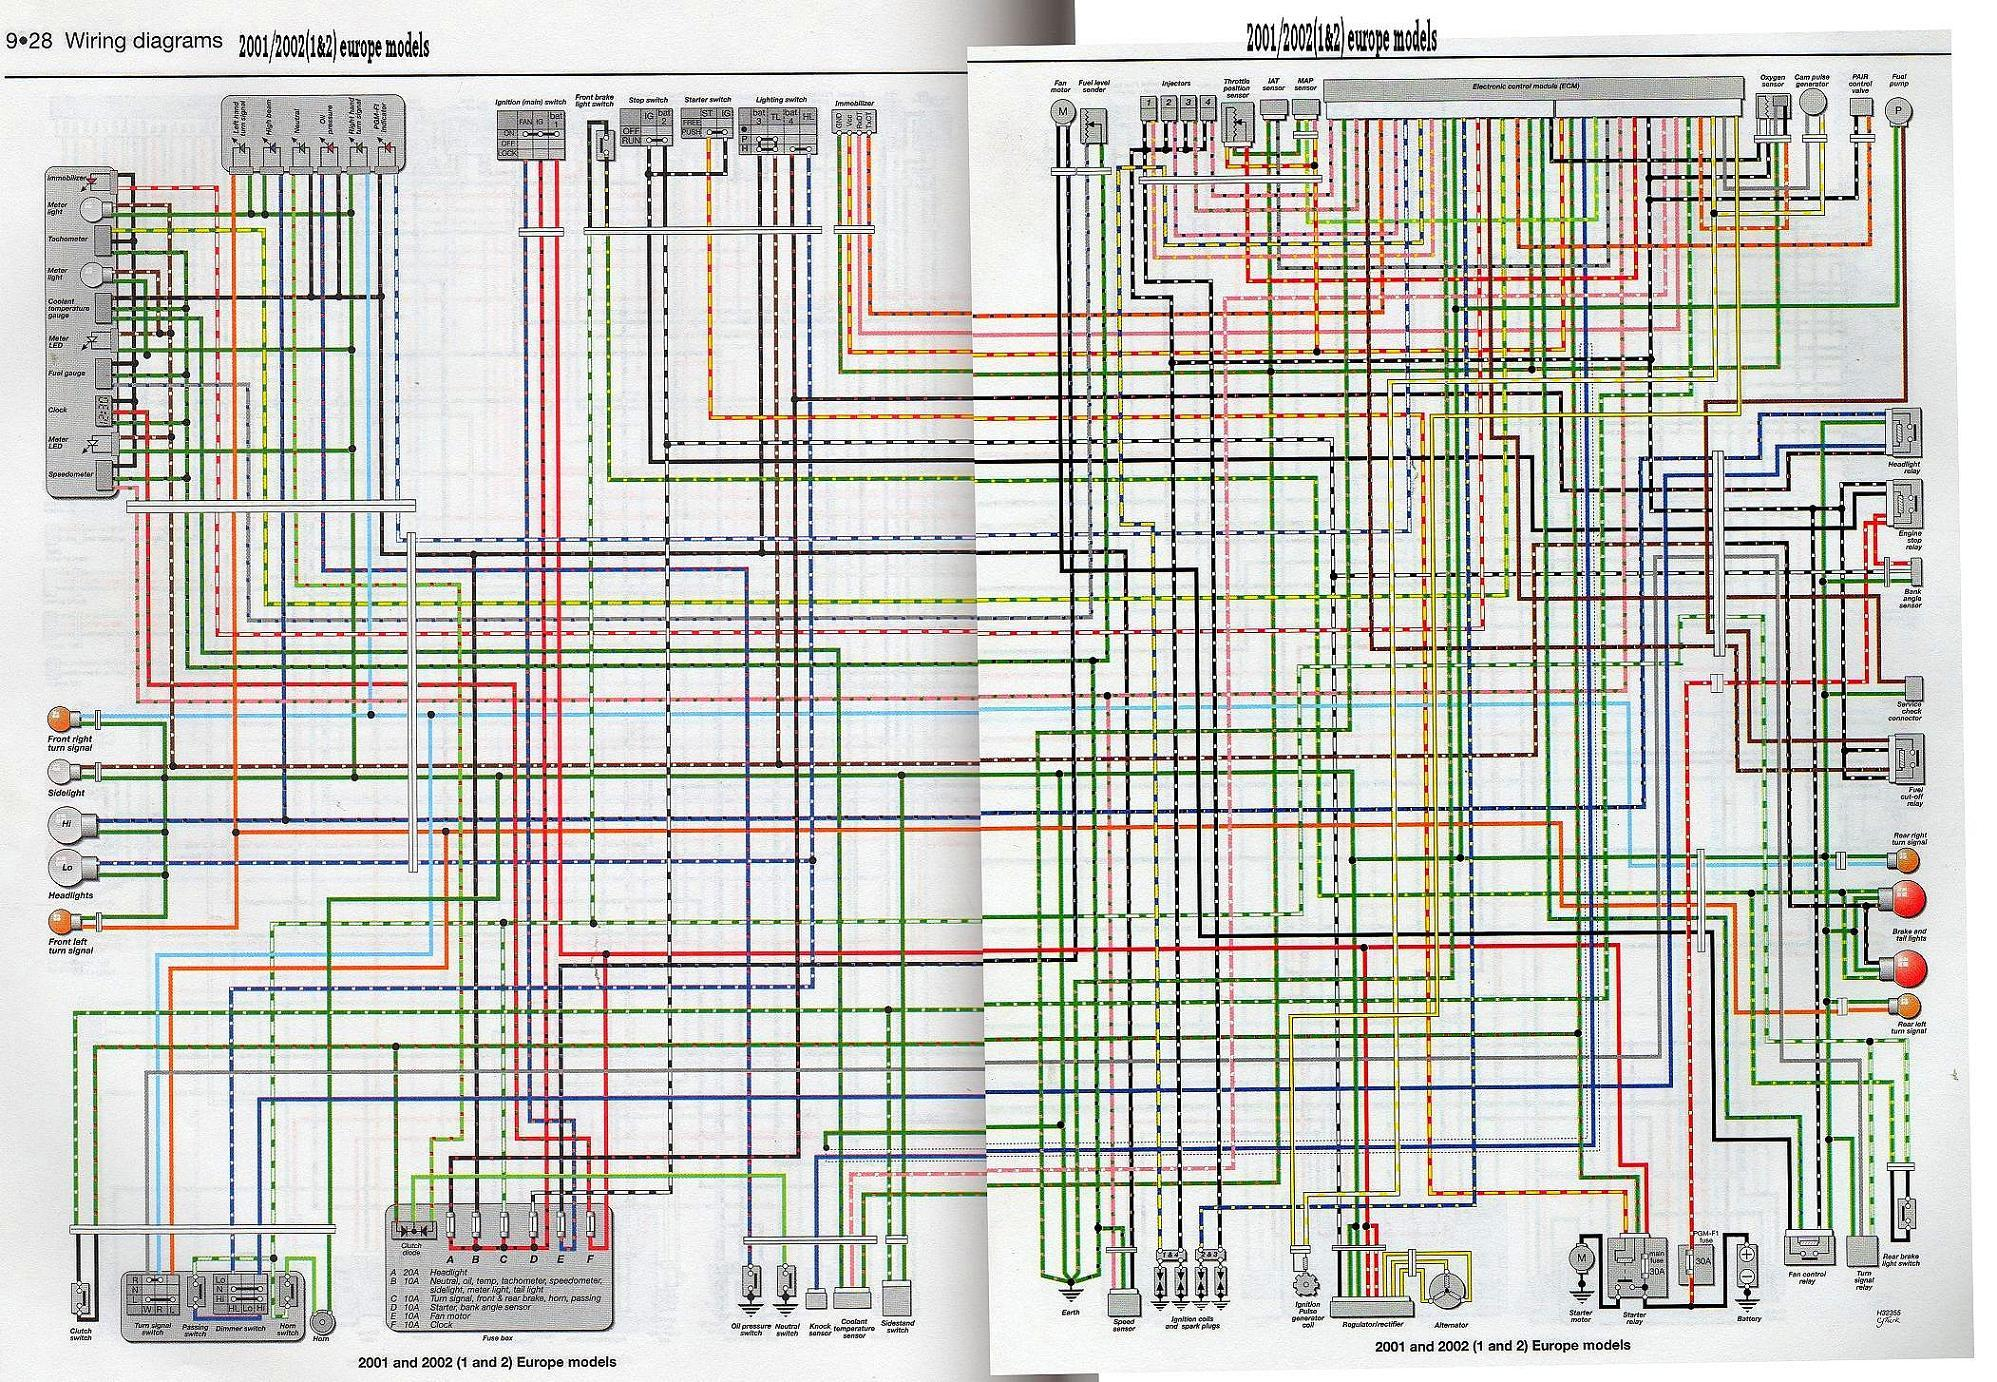 honda blackbird wiring diagram - wiring diagram hill-completed-a -  hill-completed-a.graniantichiumbri.it  graniantichiumbri.it